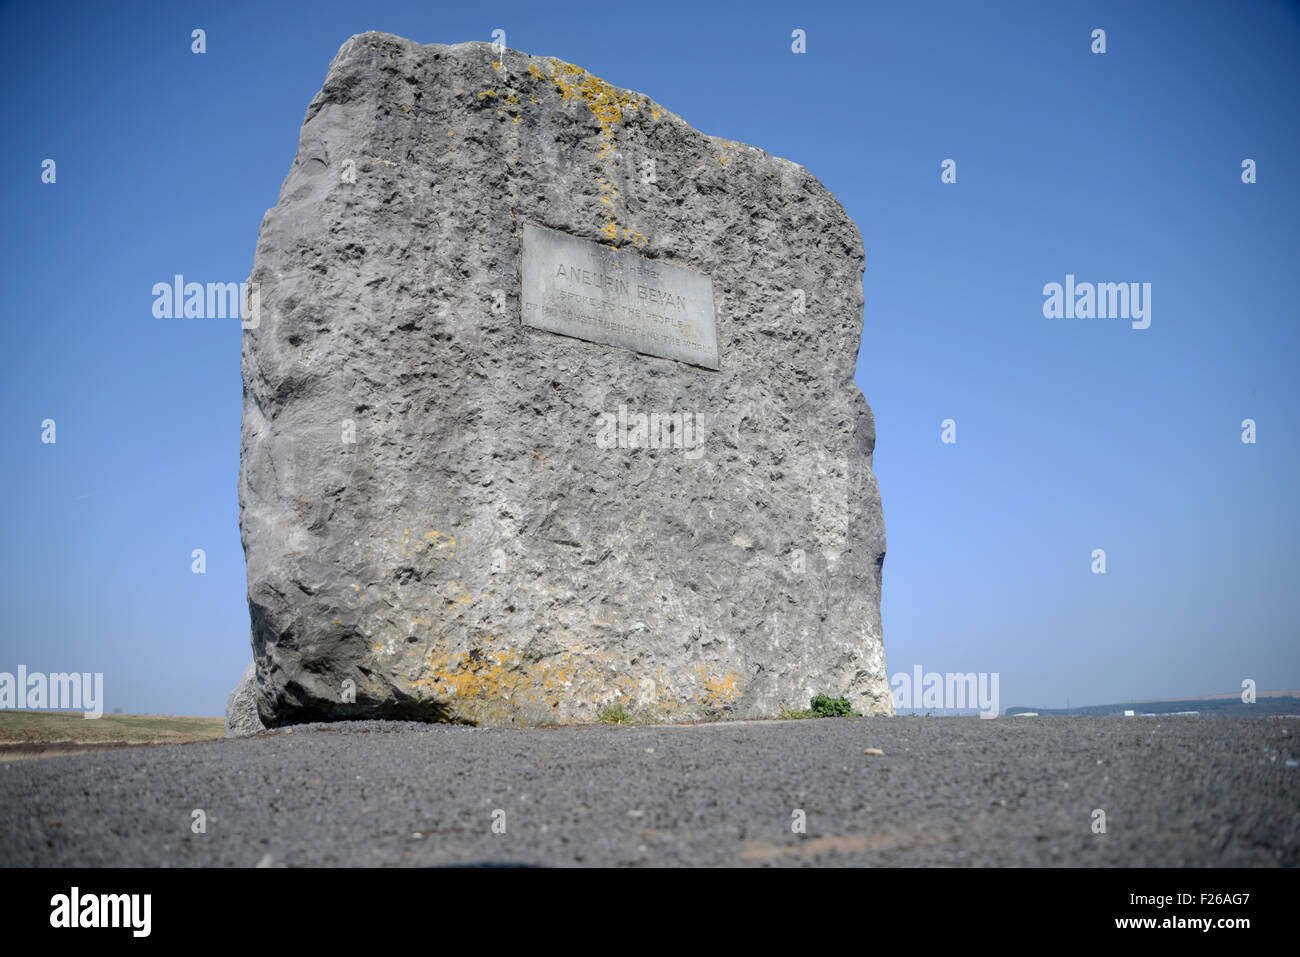 2nd February 2015  Stock file picture of the monument to Aneurin Bevan MP founder of the national Health Service - Stock Image